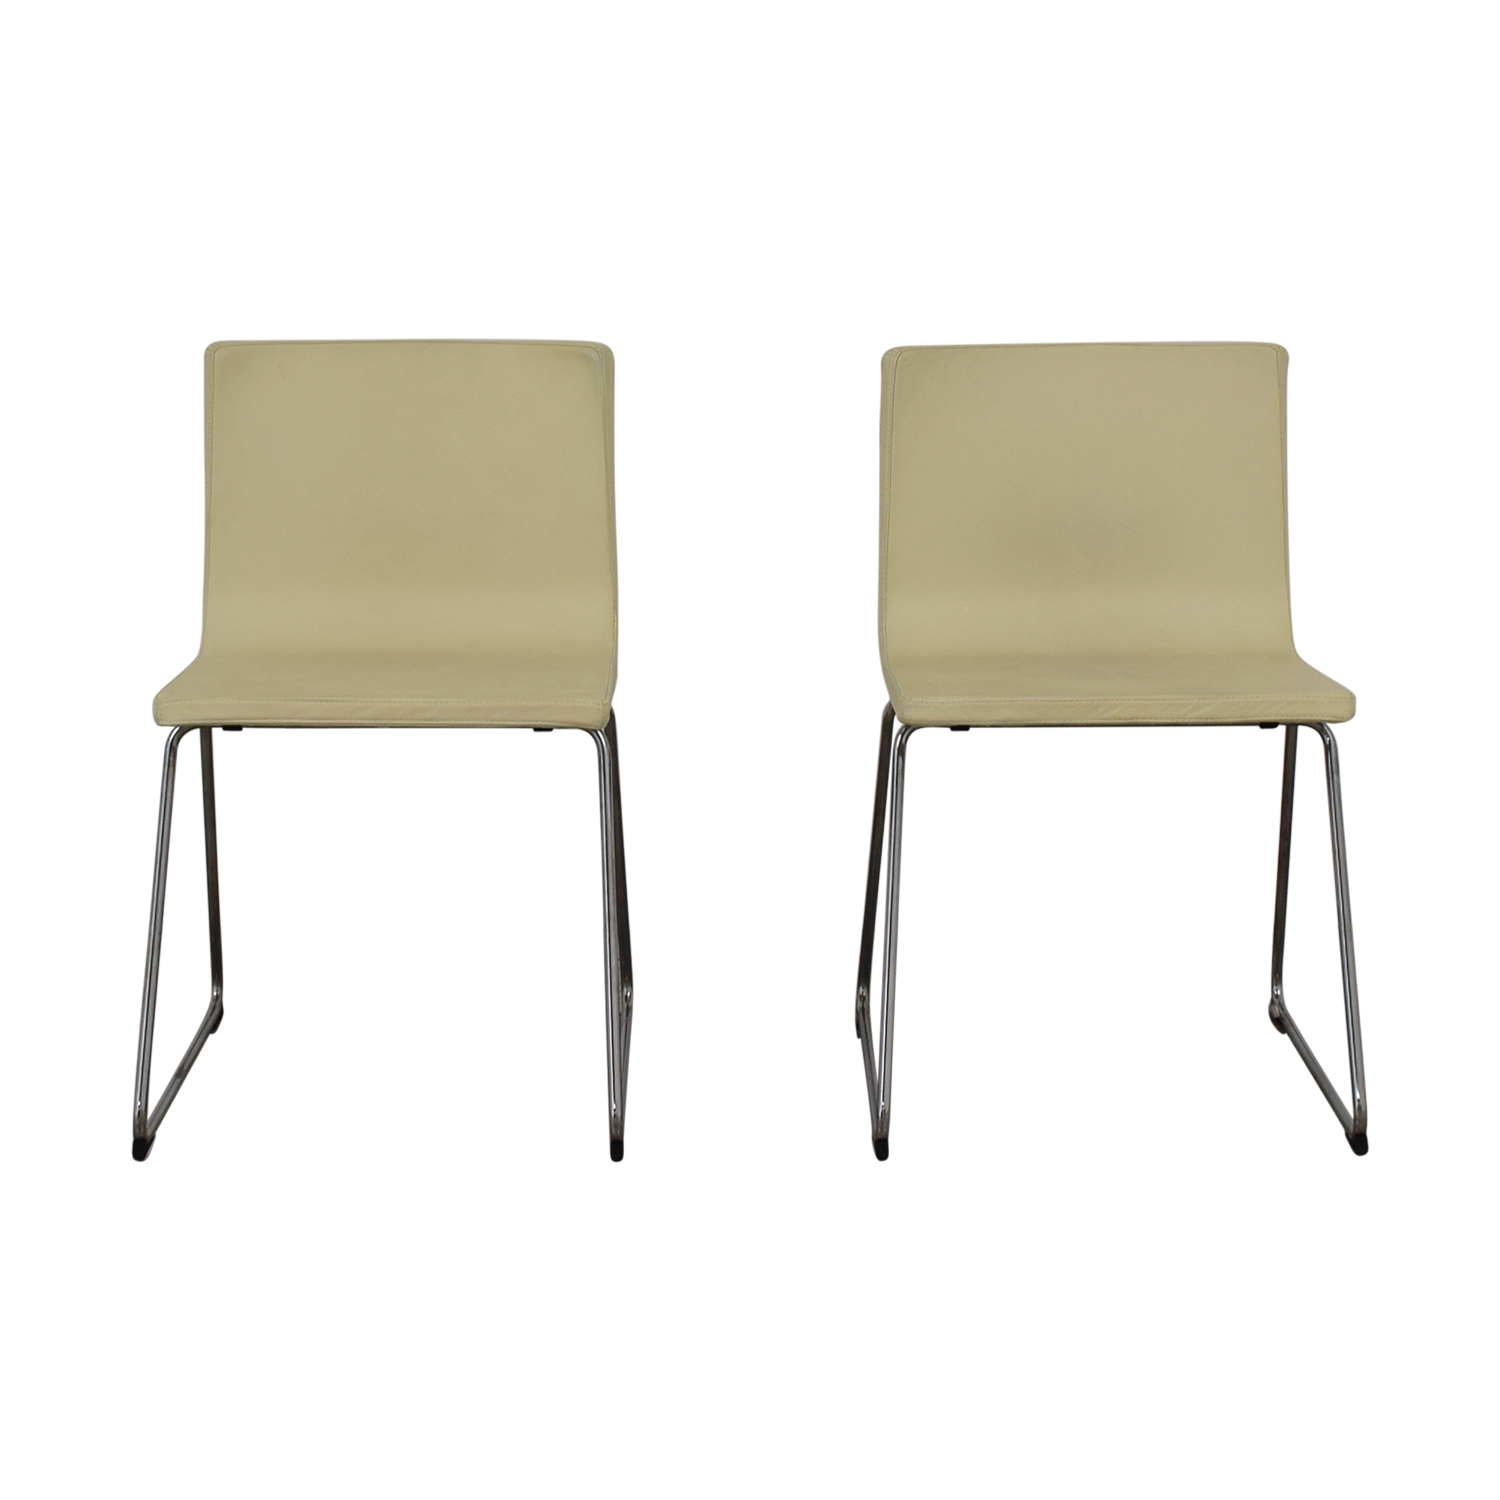 Dining Chairs Ikea 84 Off Ikea Ikea Bernhard Leather Dining Chairs Chairs